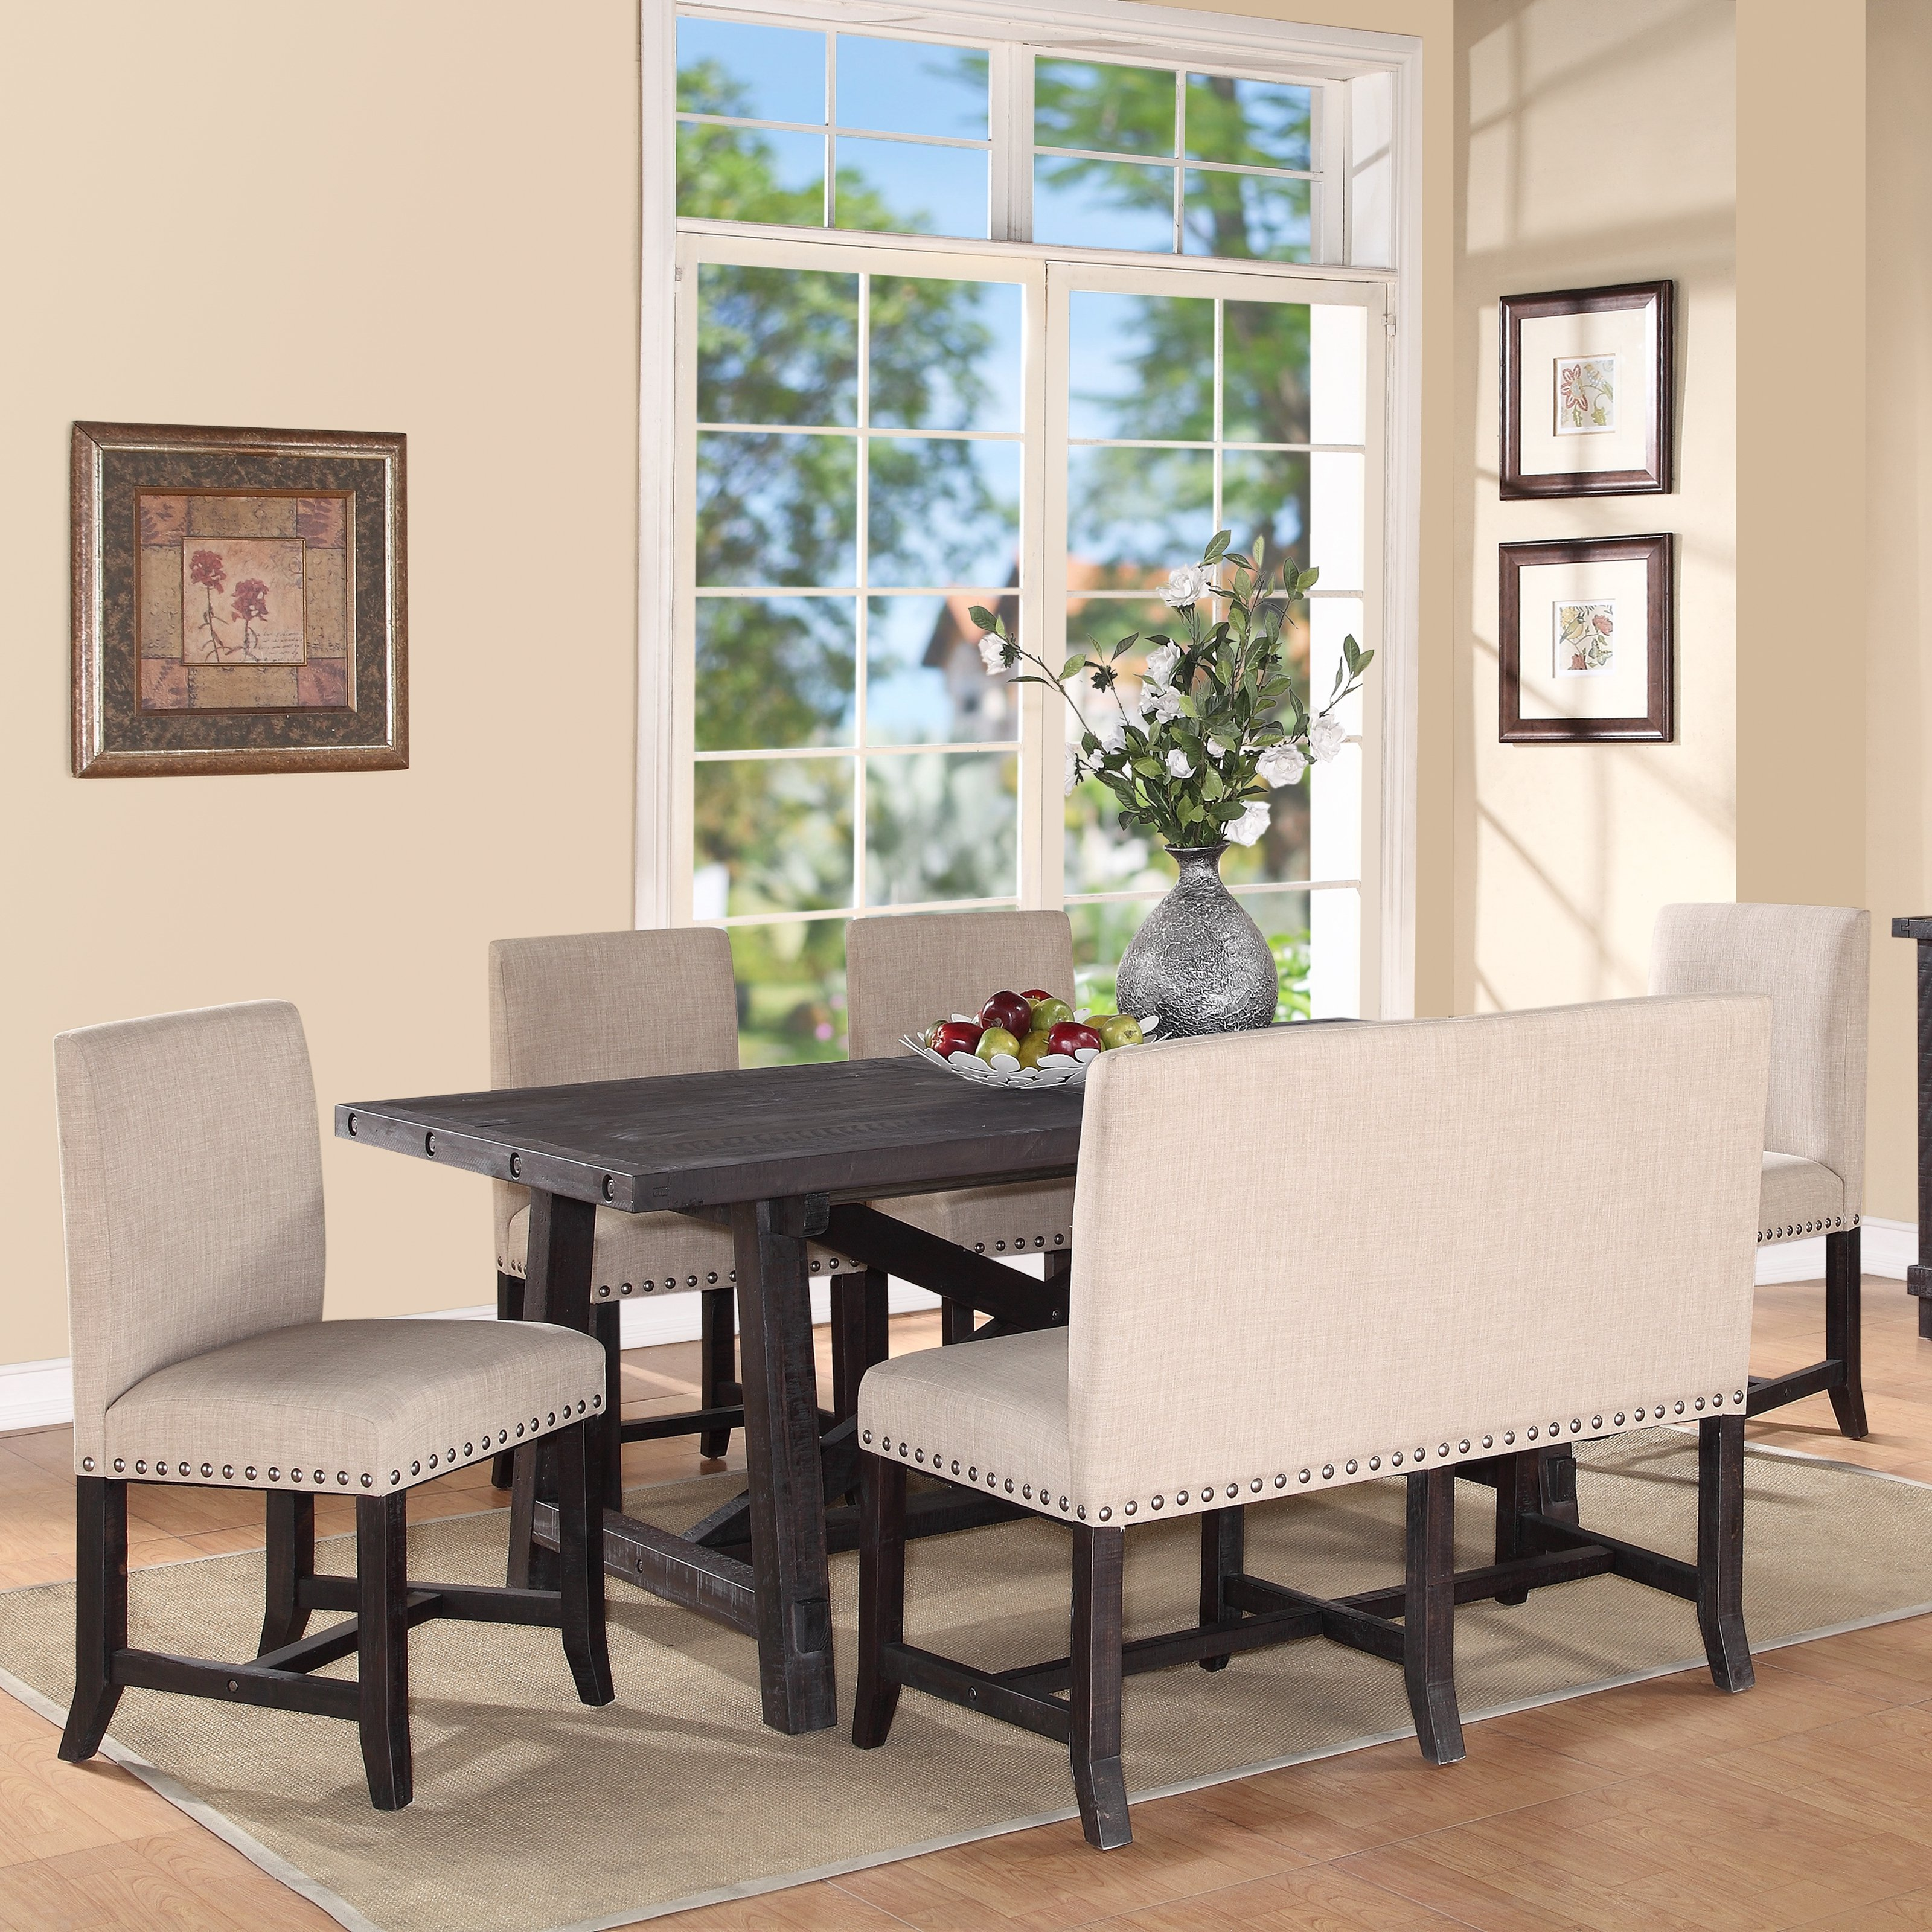 Superbe Modus Yosemite 6 Piece Rectangular Dining Table Set With Upholstered Chairs  And Settee